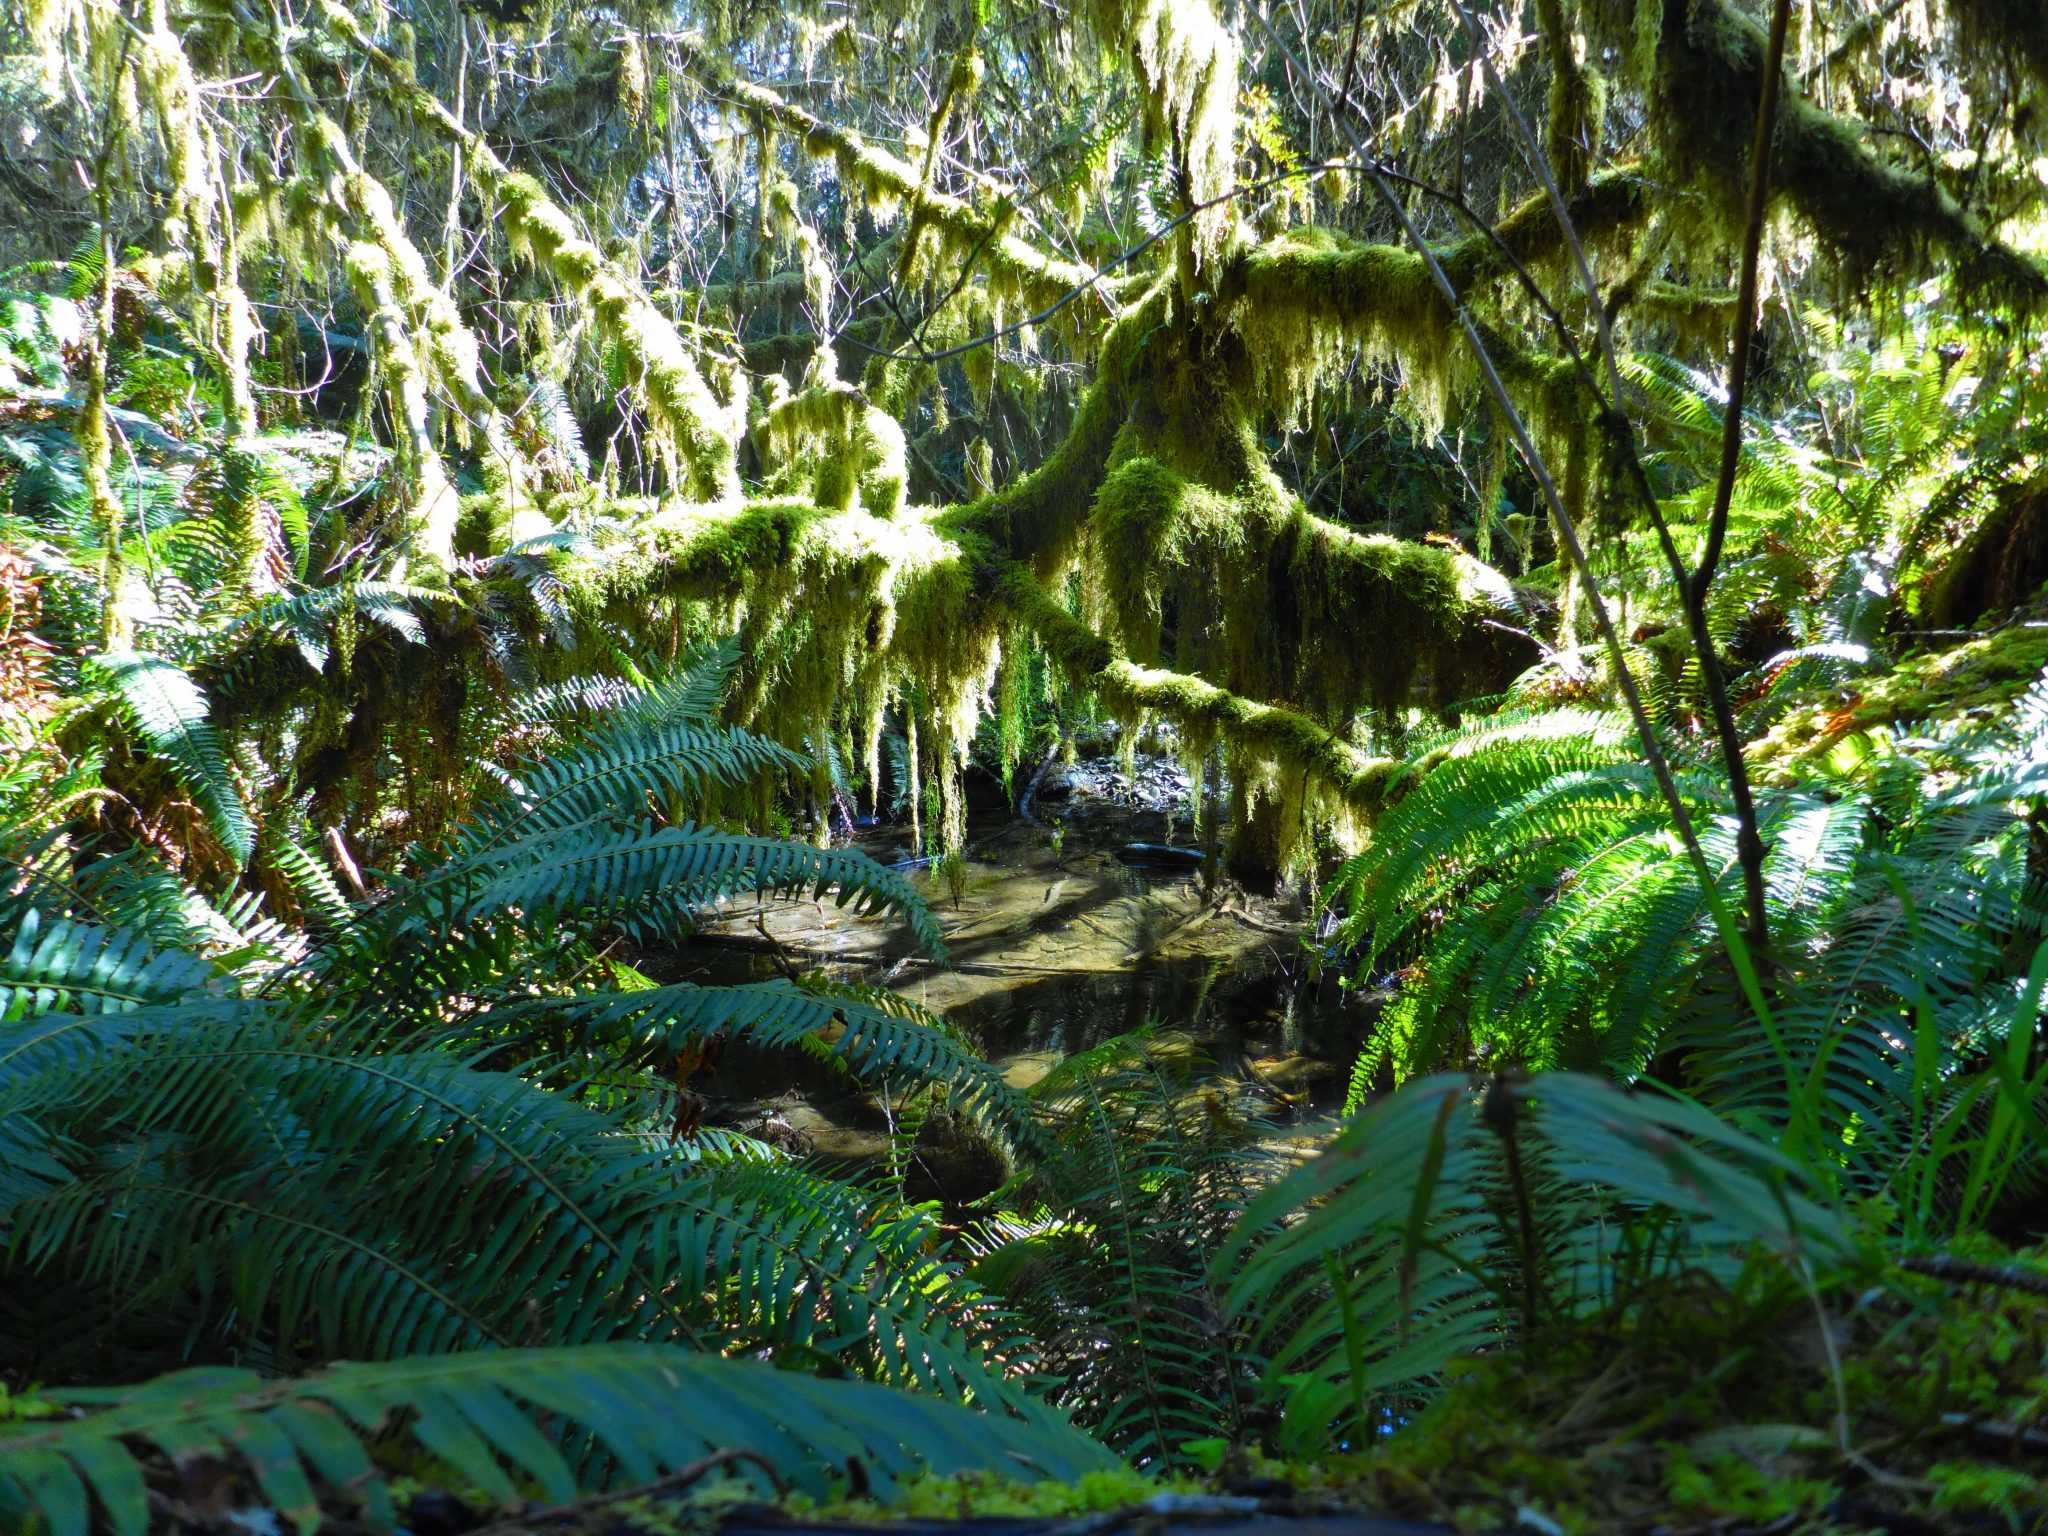 Ferns and low branches covered in moss in a forest environment